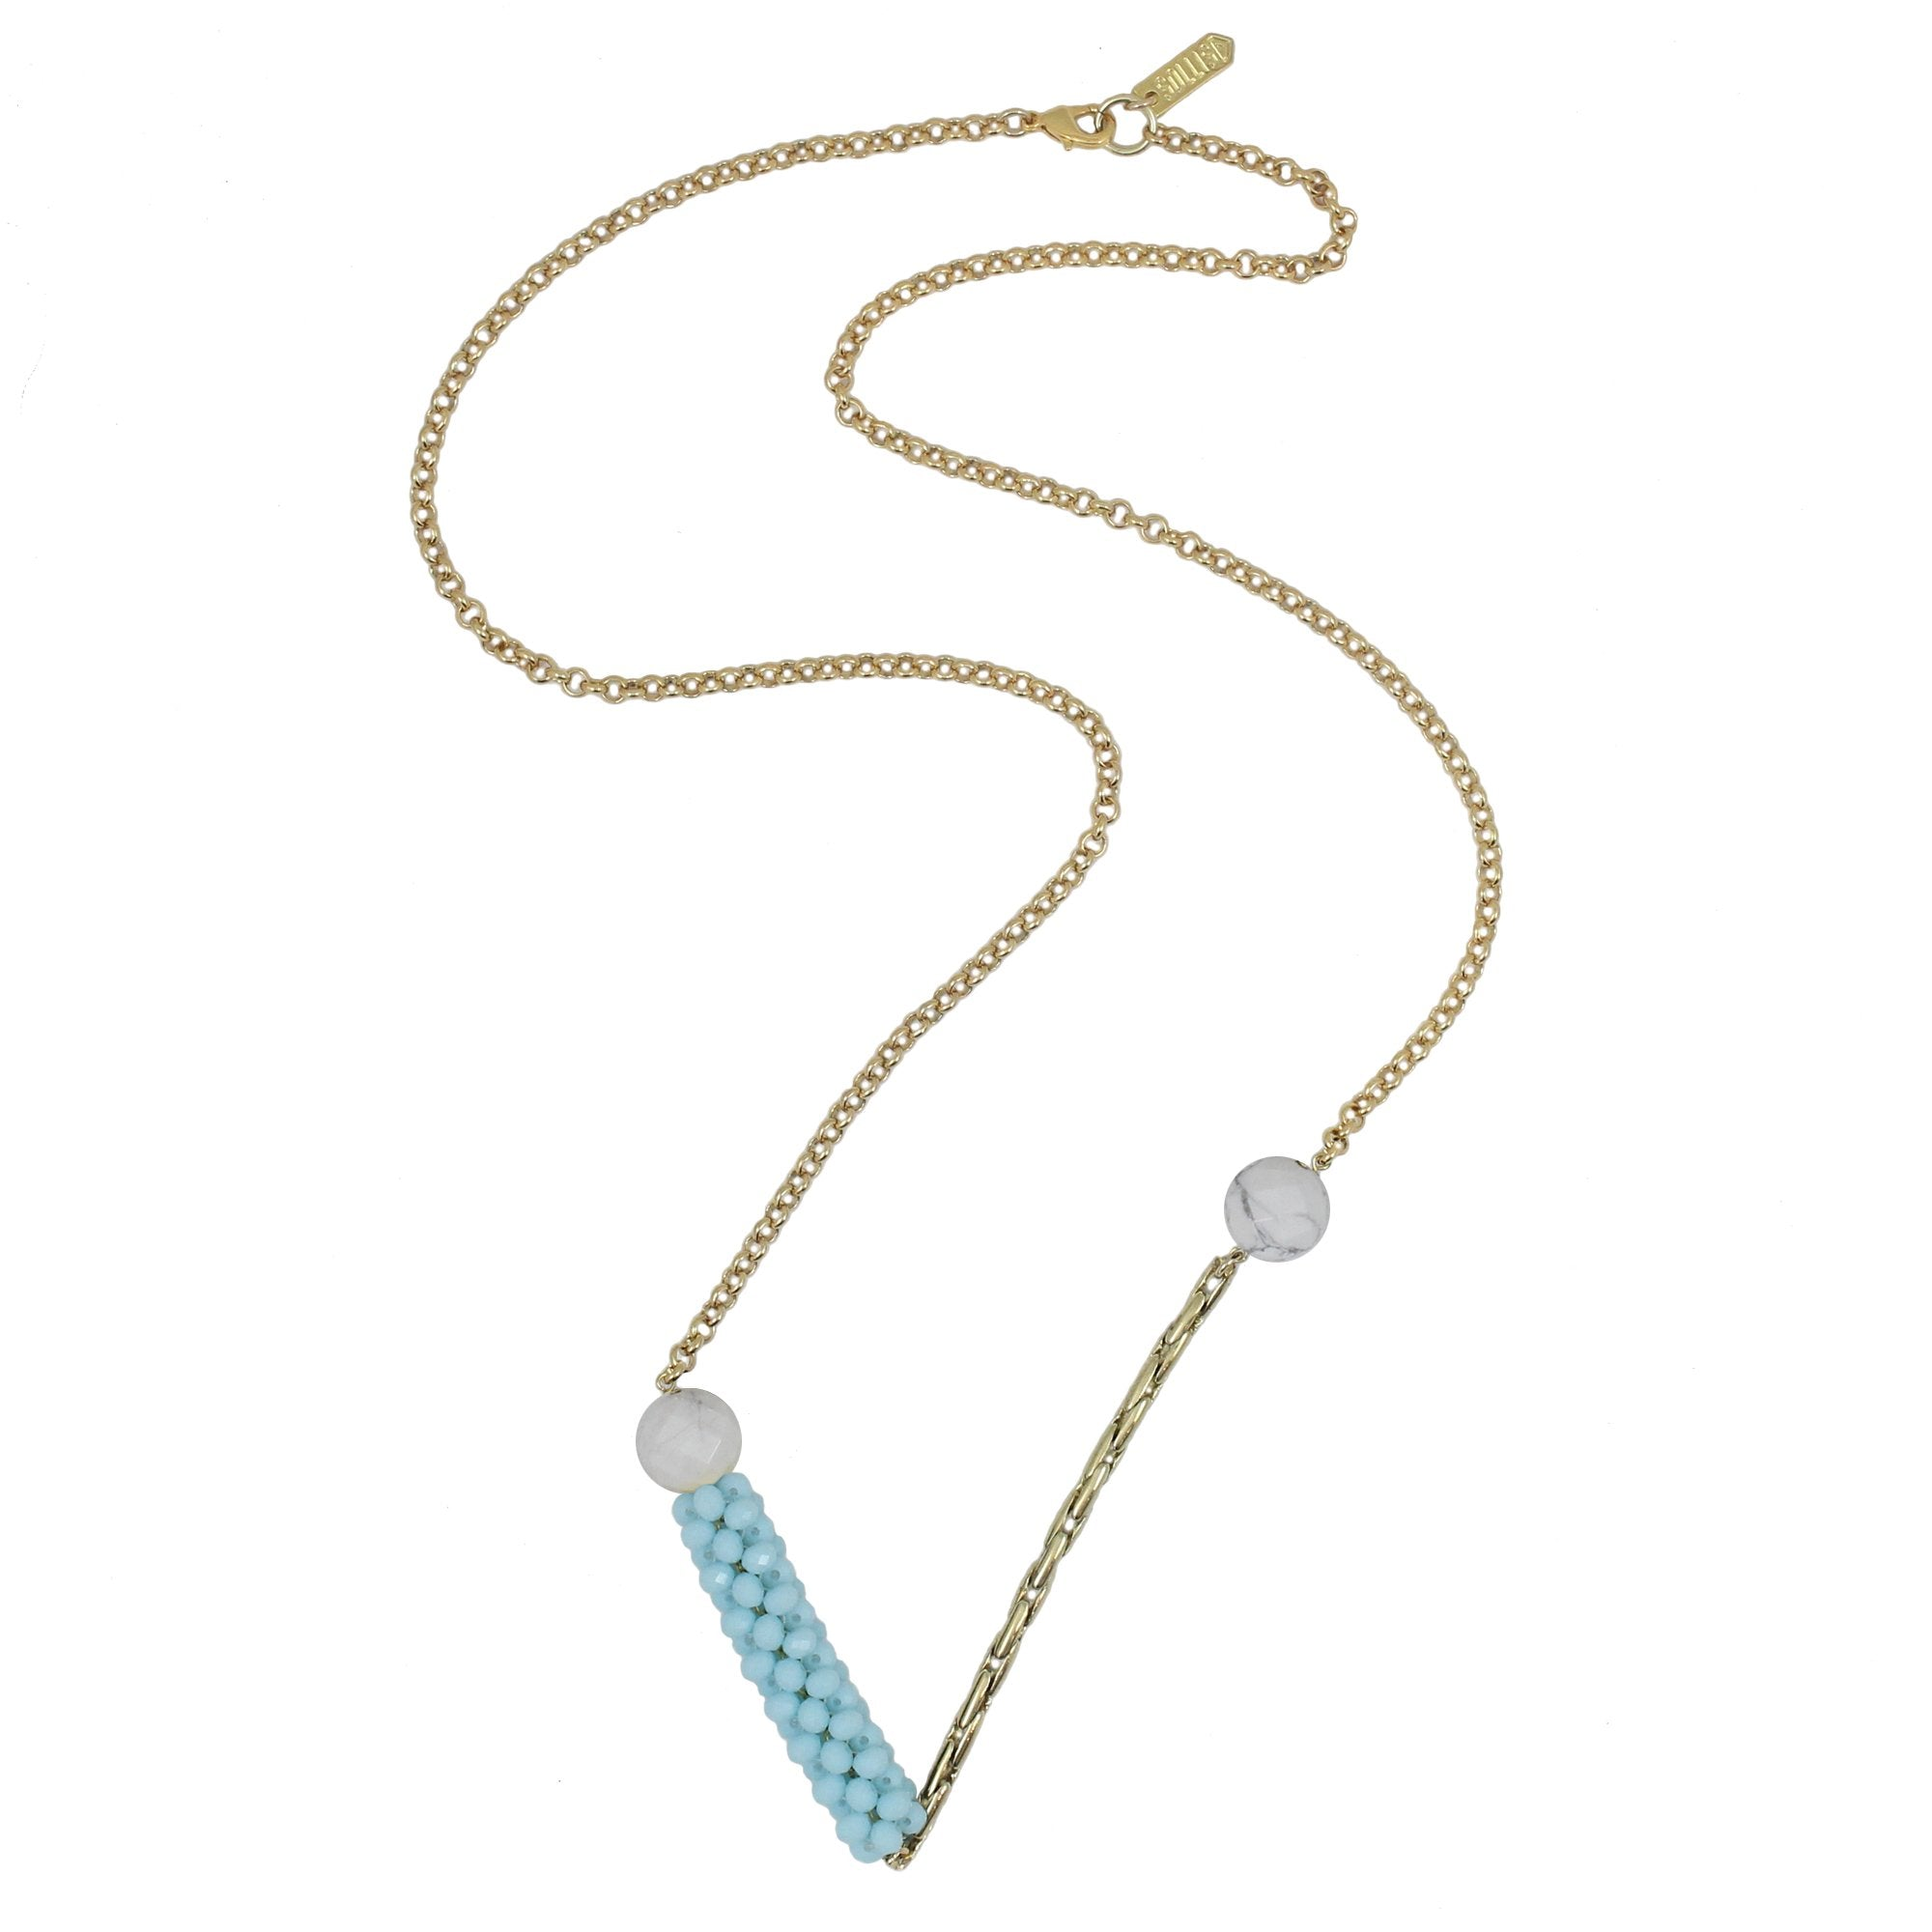 TOG necklace - 20% OFF